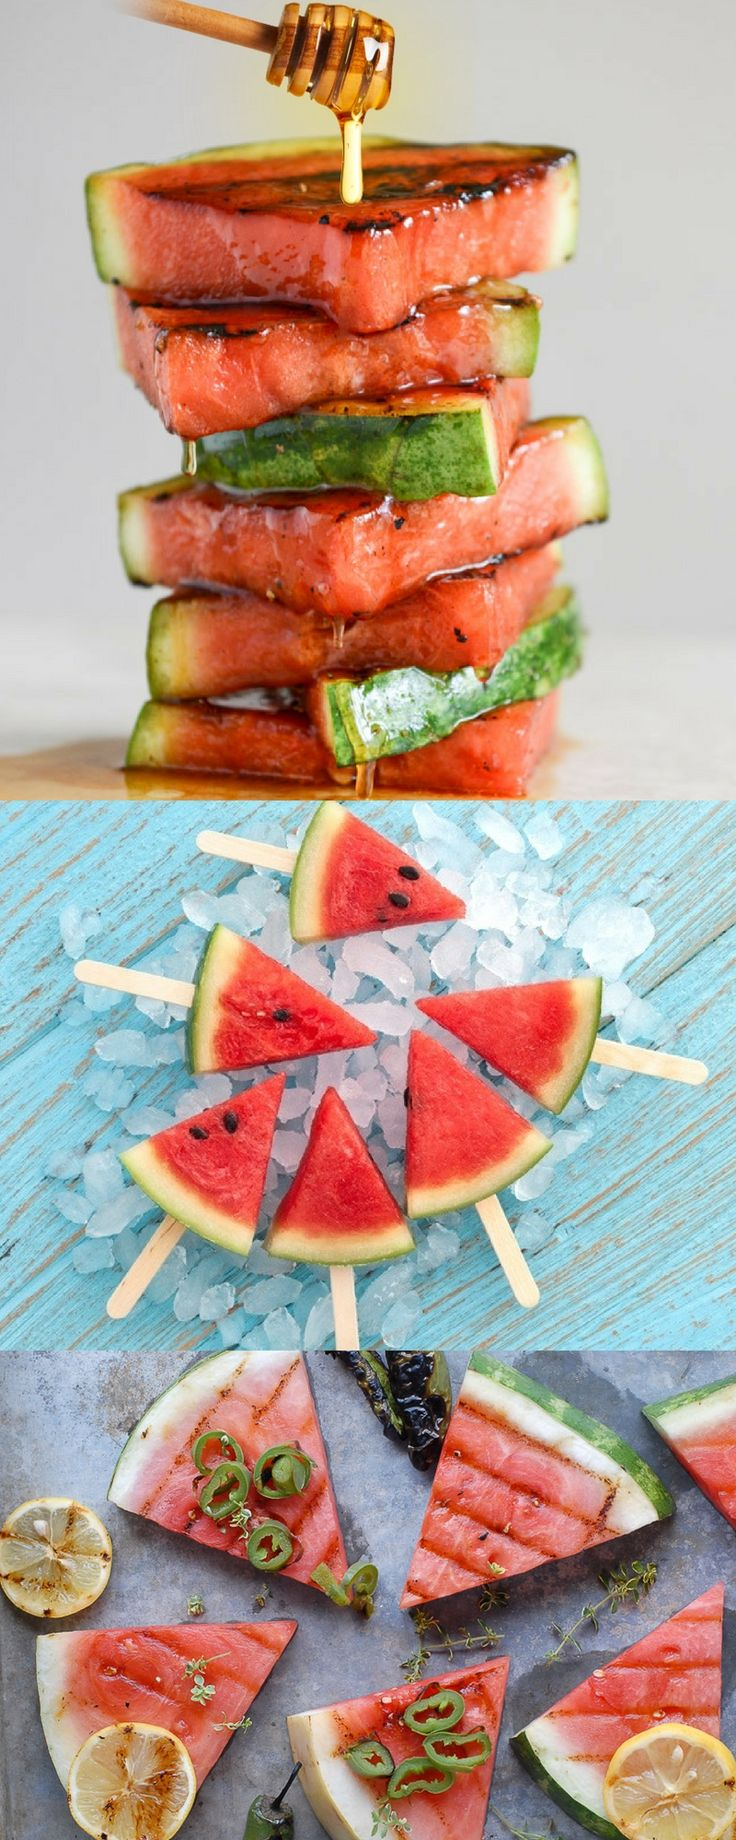 Grill Lovers' Amazing Honey-Glazed Grilled Watermelon Recipe #recipes #foodporn…